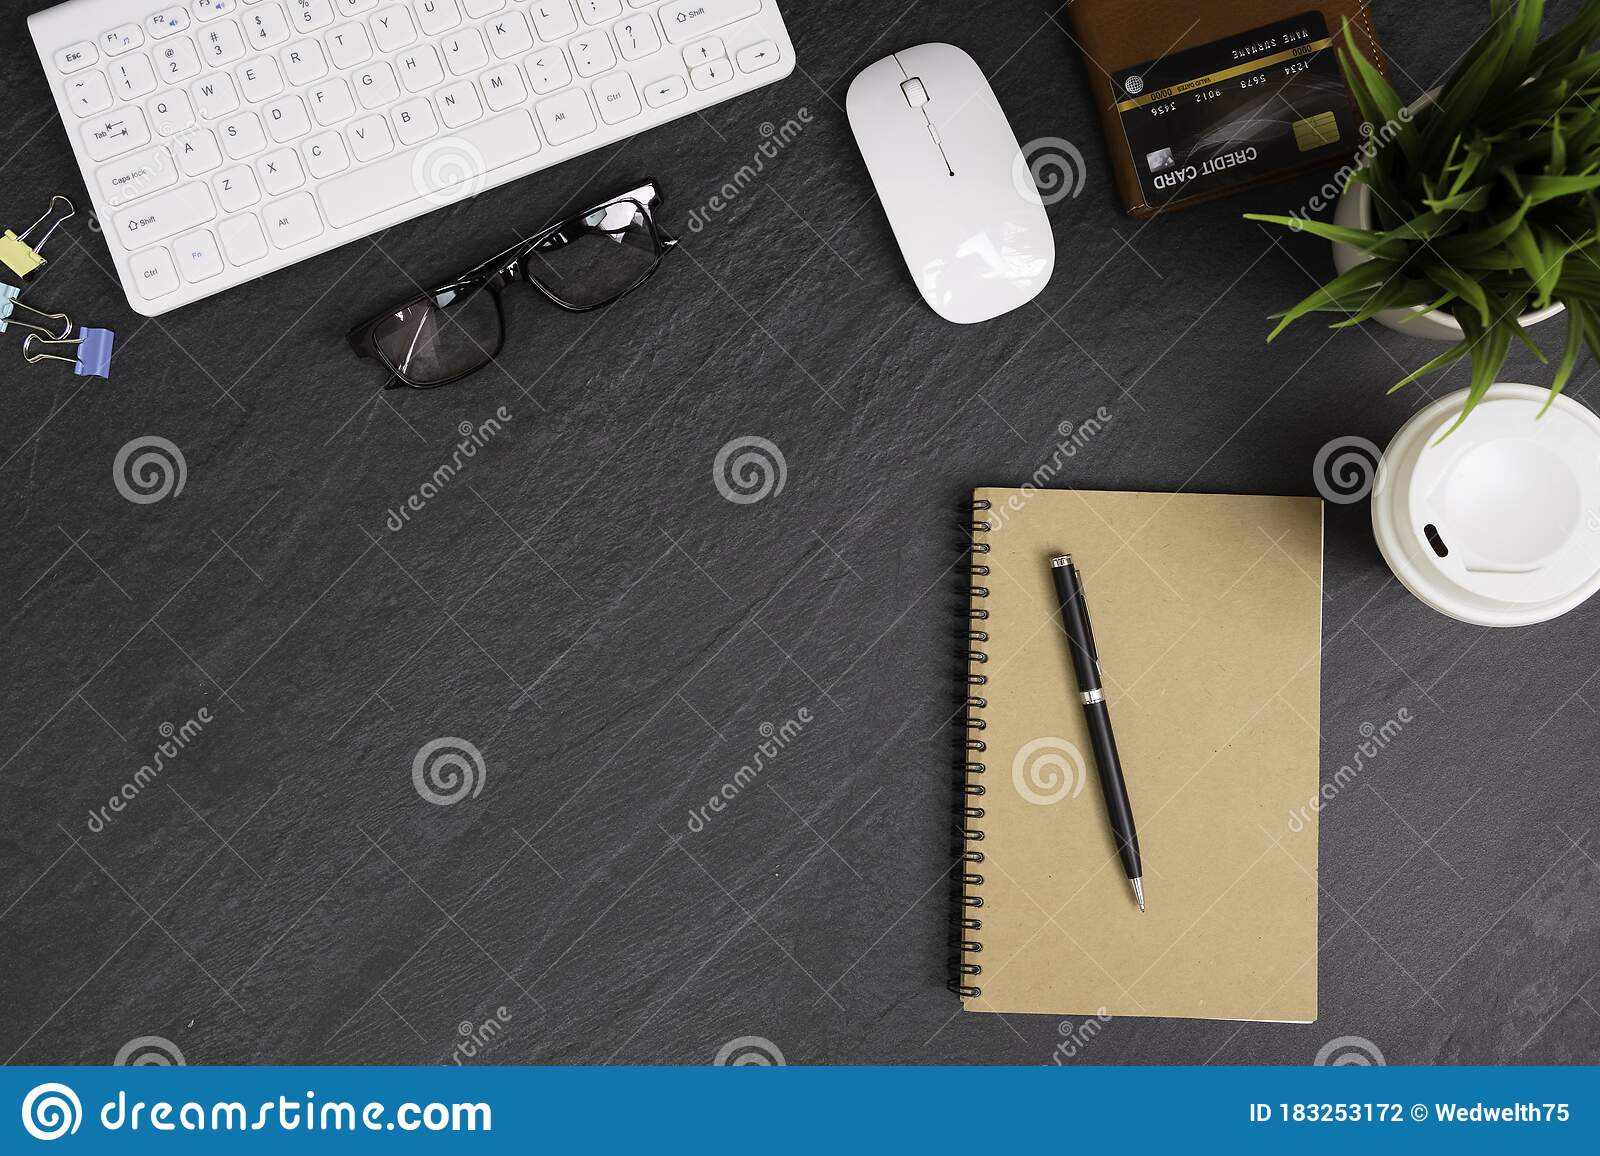 Black Stone Office Desk Table With White Keyboard Notebook Pen Eyeglasses Document Clips Brown Wallet And Credit Card Stock Photo Image Of Flat Keyboard 183253172